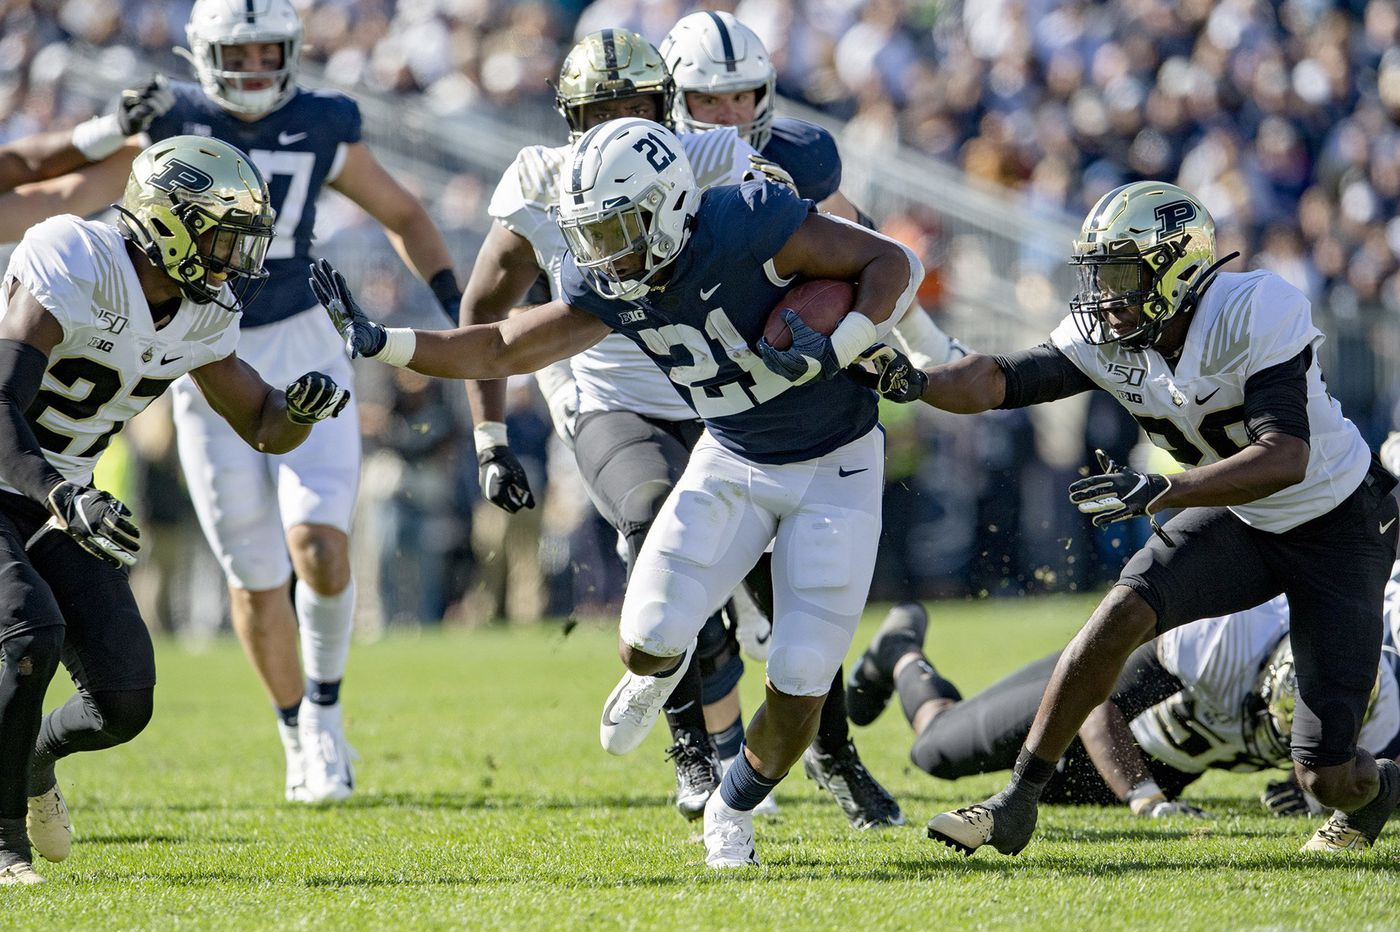 A more diversified rushing attack enhances the Penn State offense